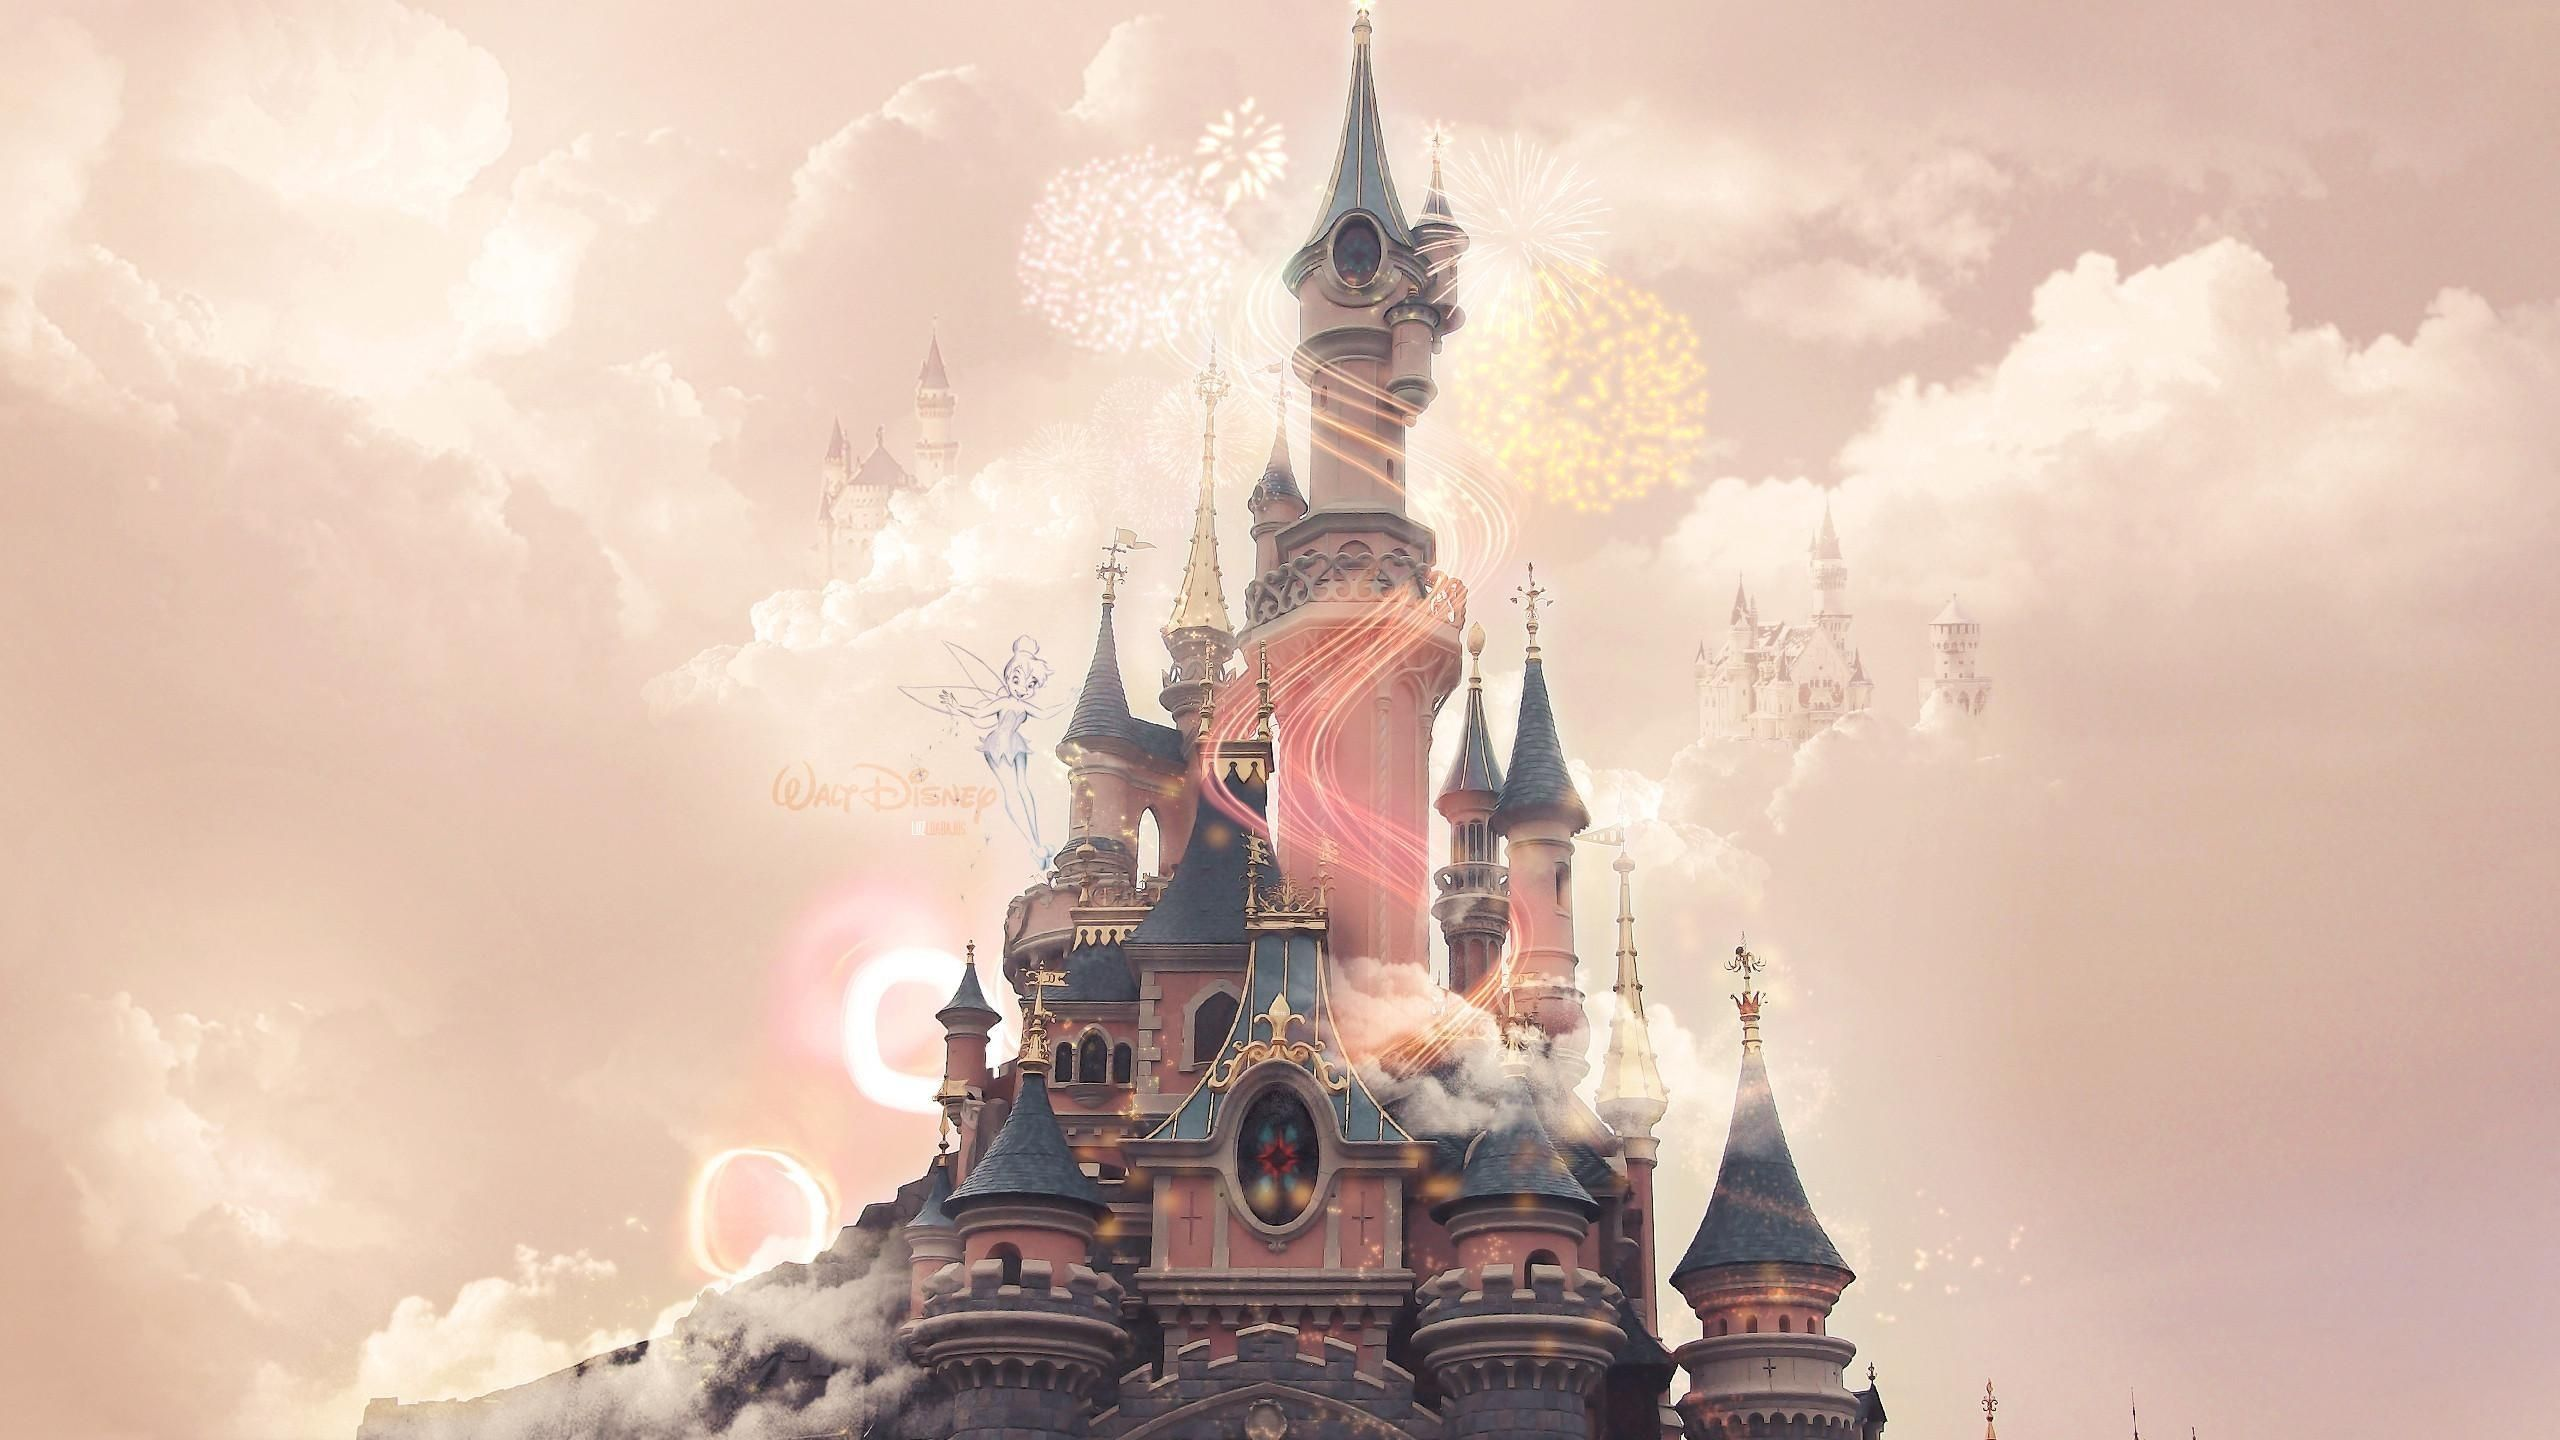 70 Disney Background Wallpapers On Wallpaperplay Disney Desktop Wallpaper Disney Wallpaper Cute Disney Wallpaper